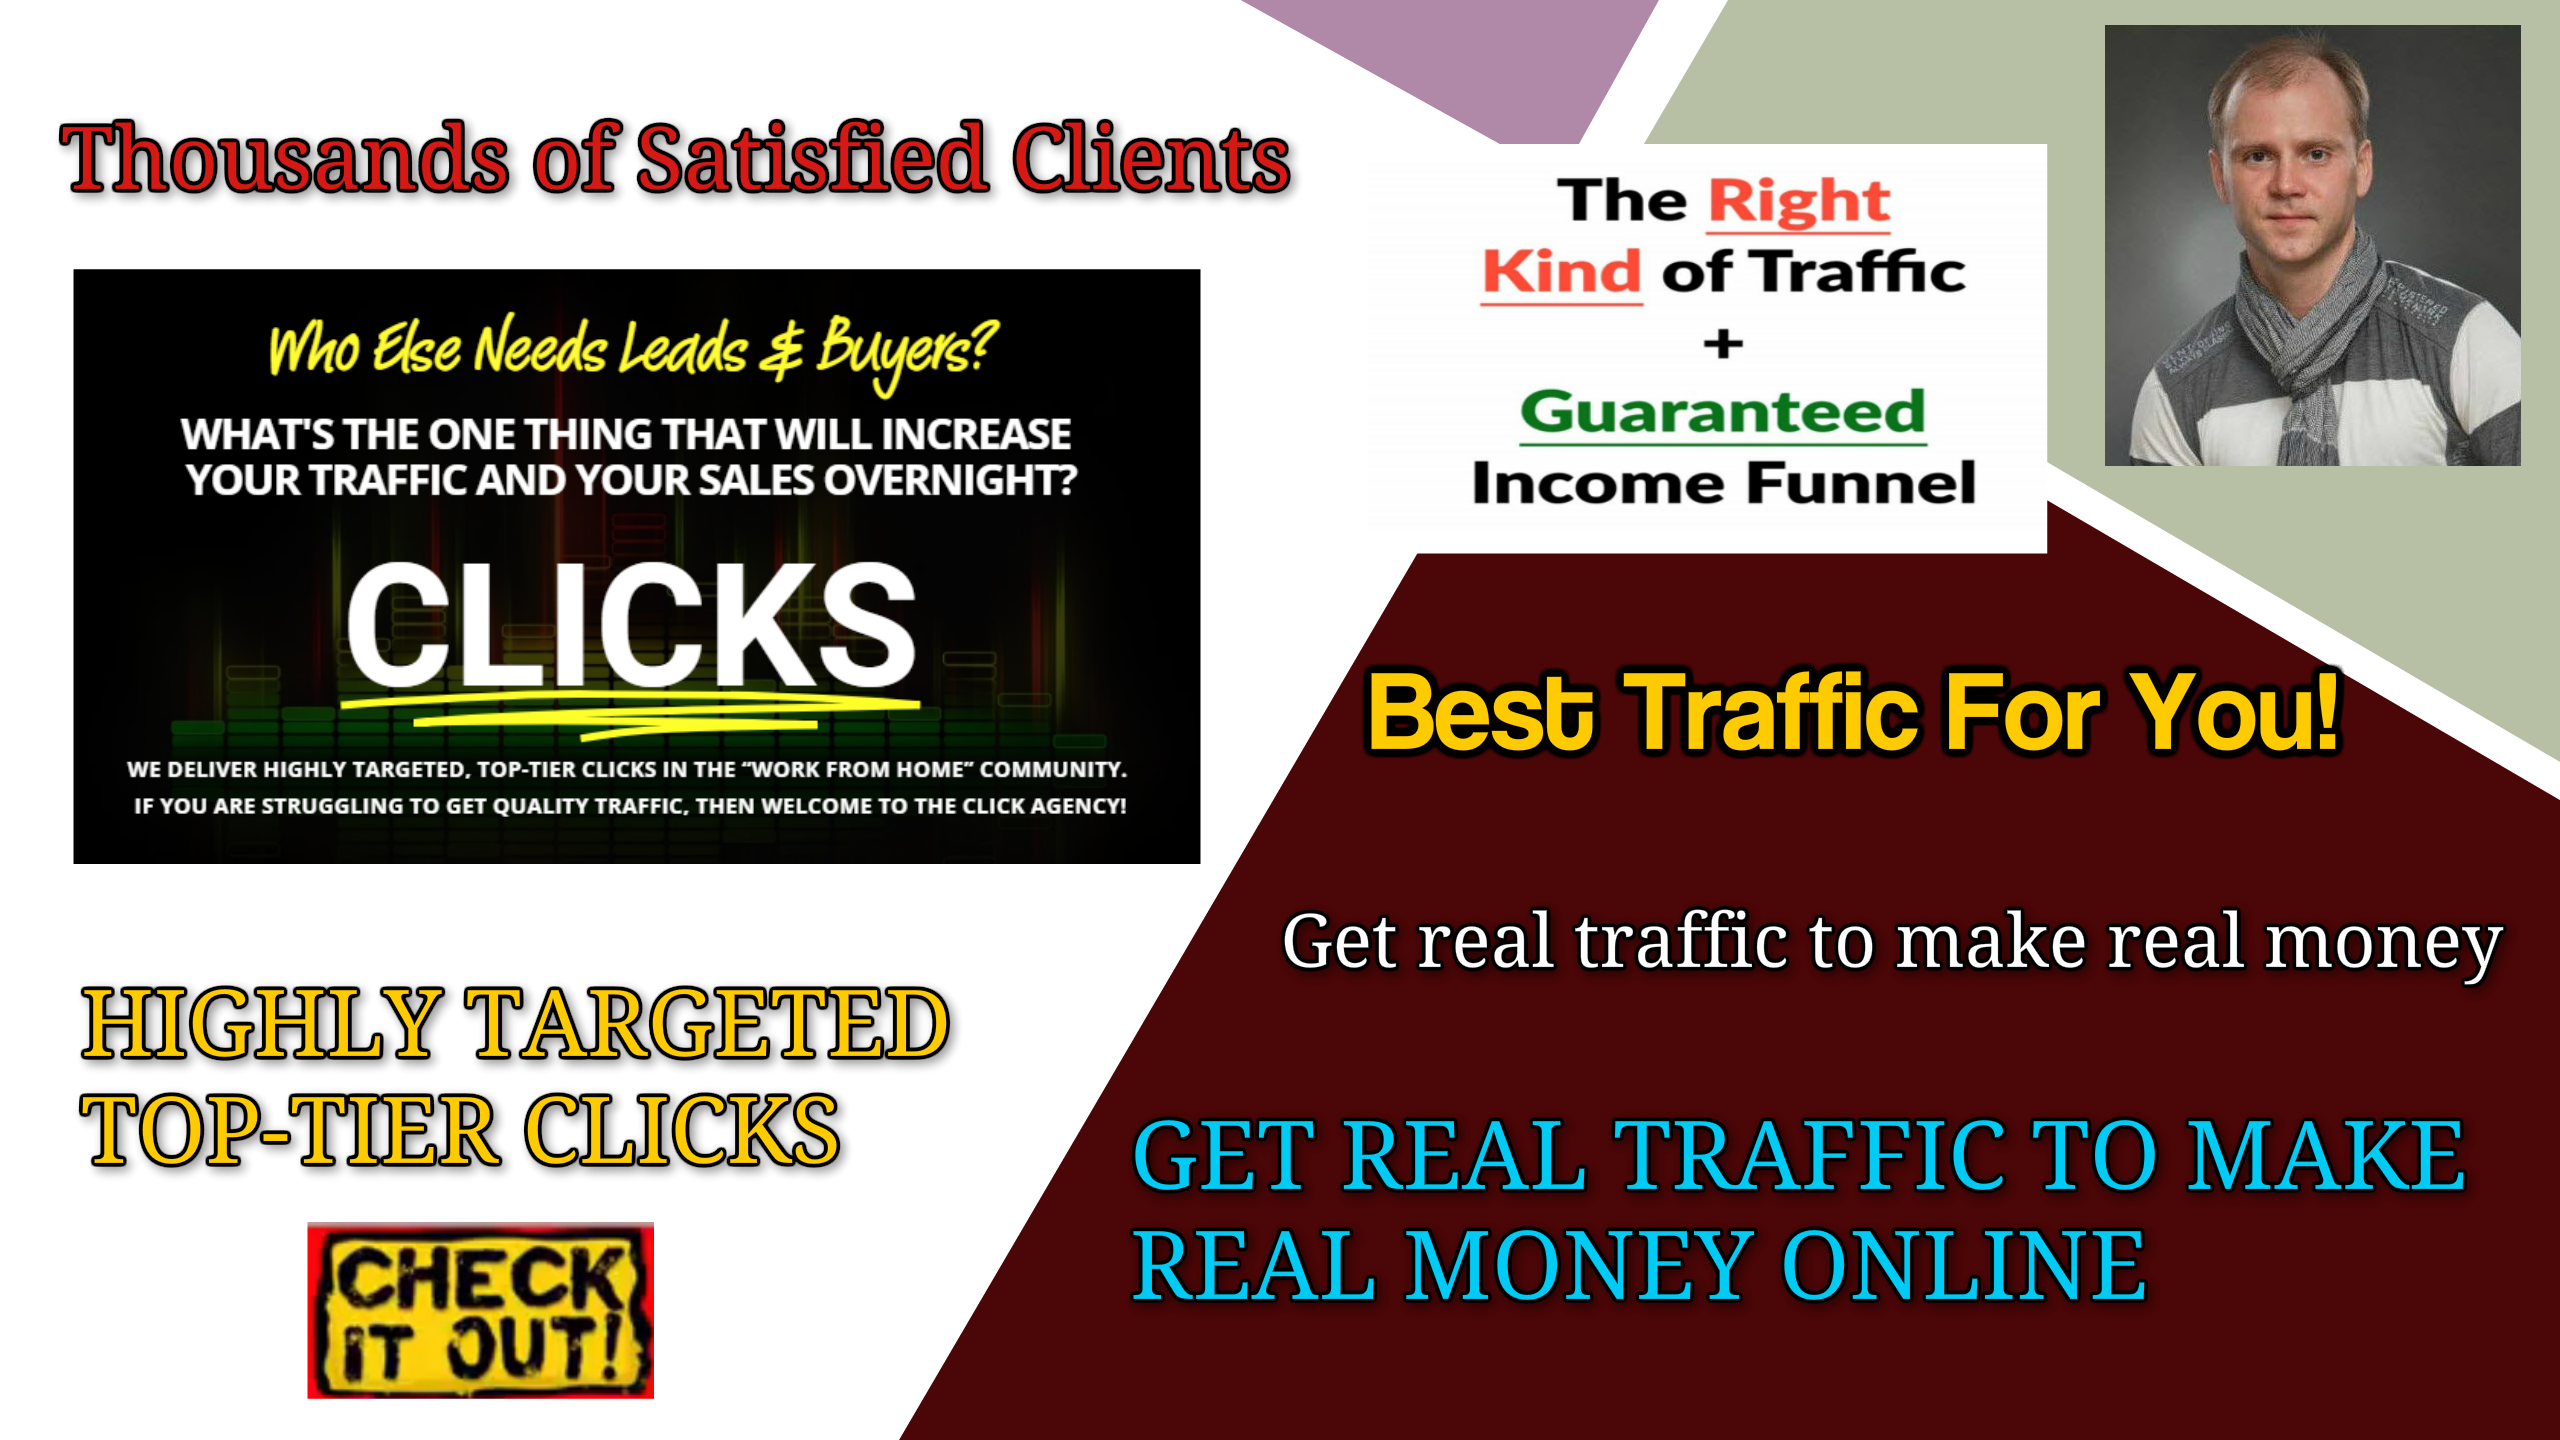 BESTTRAFFICFORYOU - GET REAL TRAFFIC TO MAKE REAL SALES